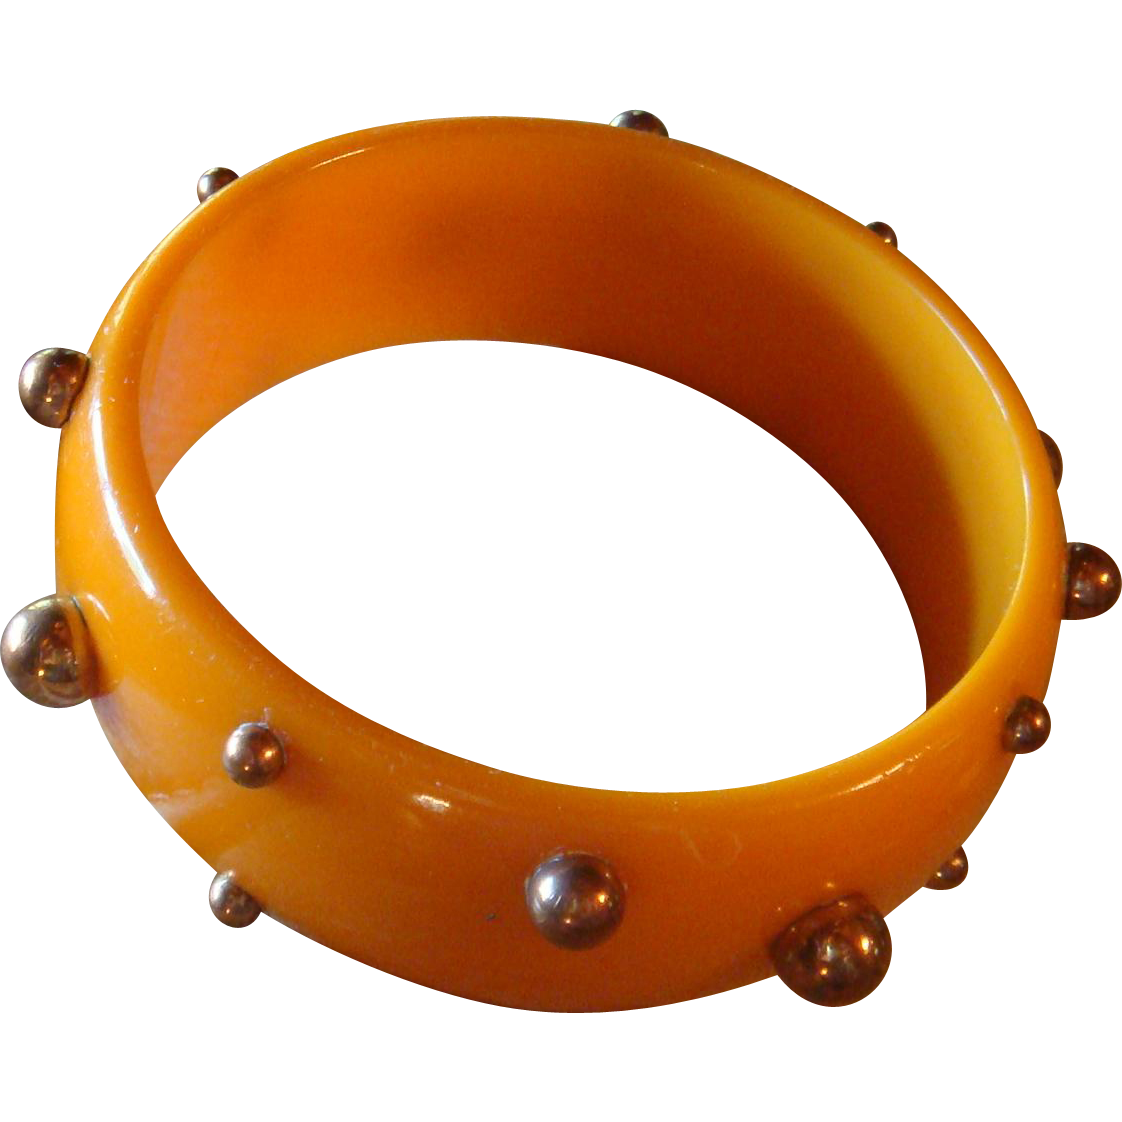 Pumpkin Orange Bakelite Bangle Bracelet With Copper Stud Beads Sputnik